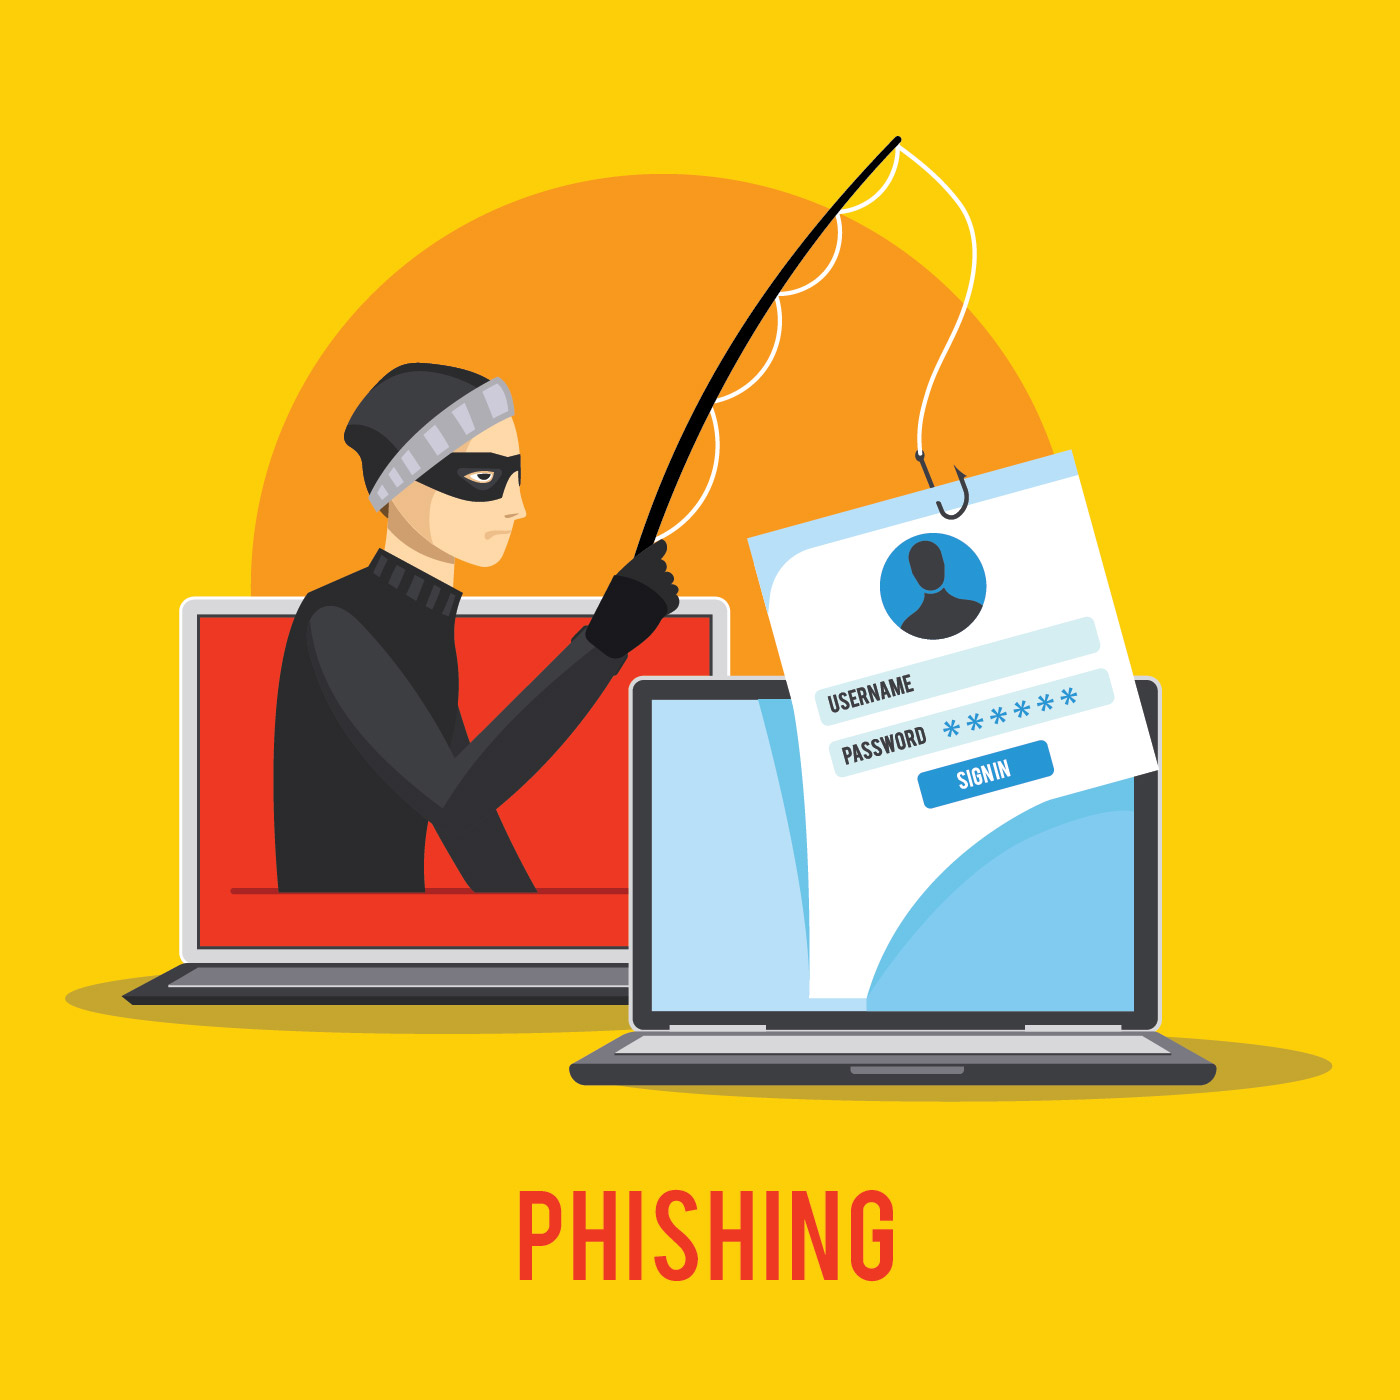 Hacker Phishing Data Via Internet - Download Free Vector Art, Stock